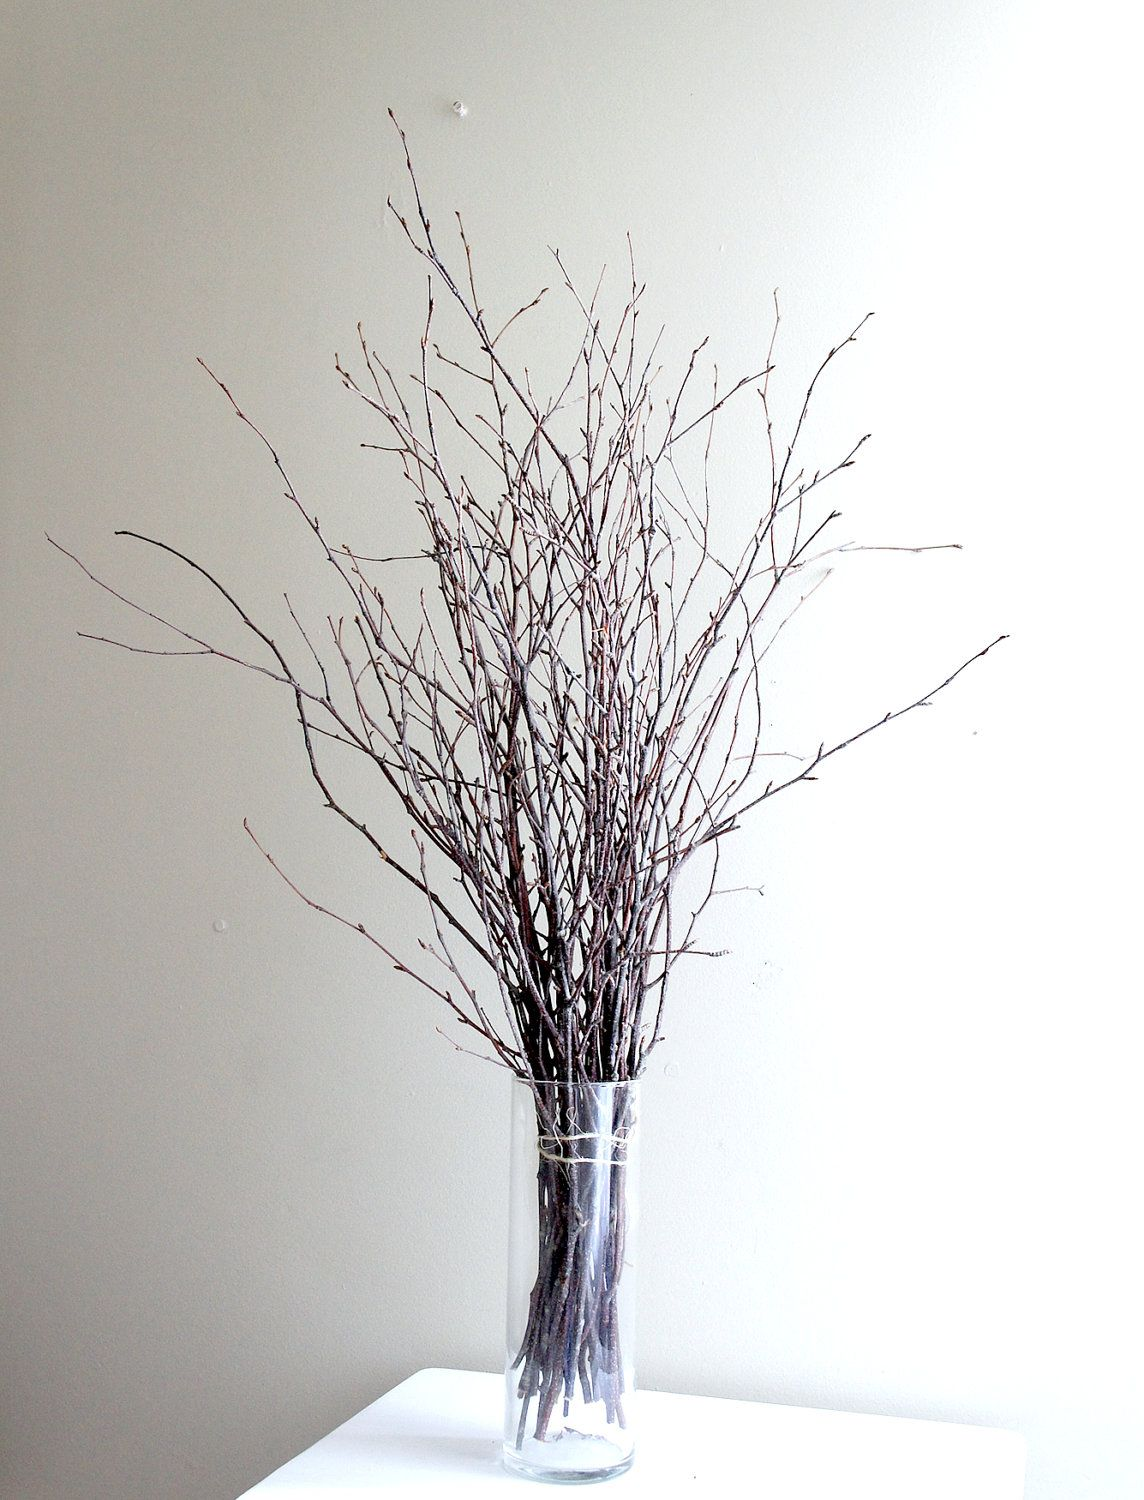 Sale Natural White Birch Twigs For Diy Projects 14 00 Via Etsy Dried Flowers Twig Diy Projects